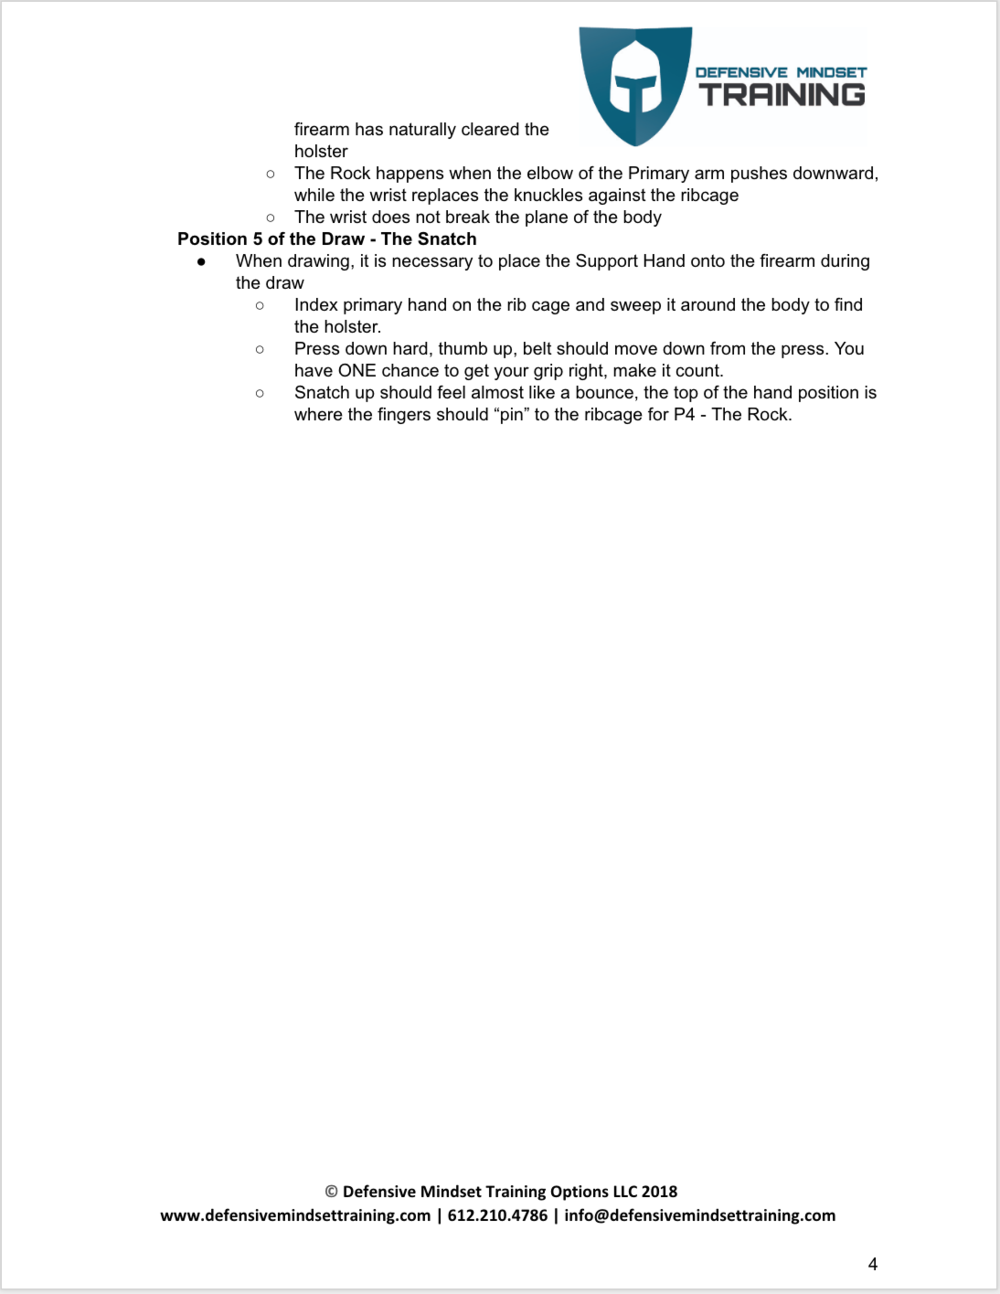 Week 6 Student Guide p 4